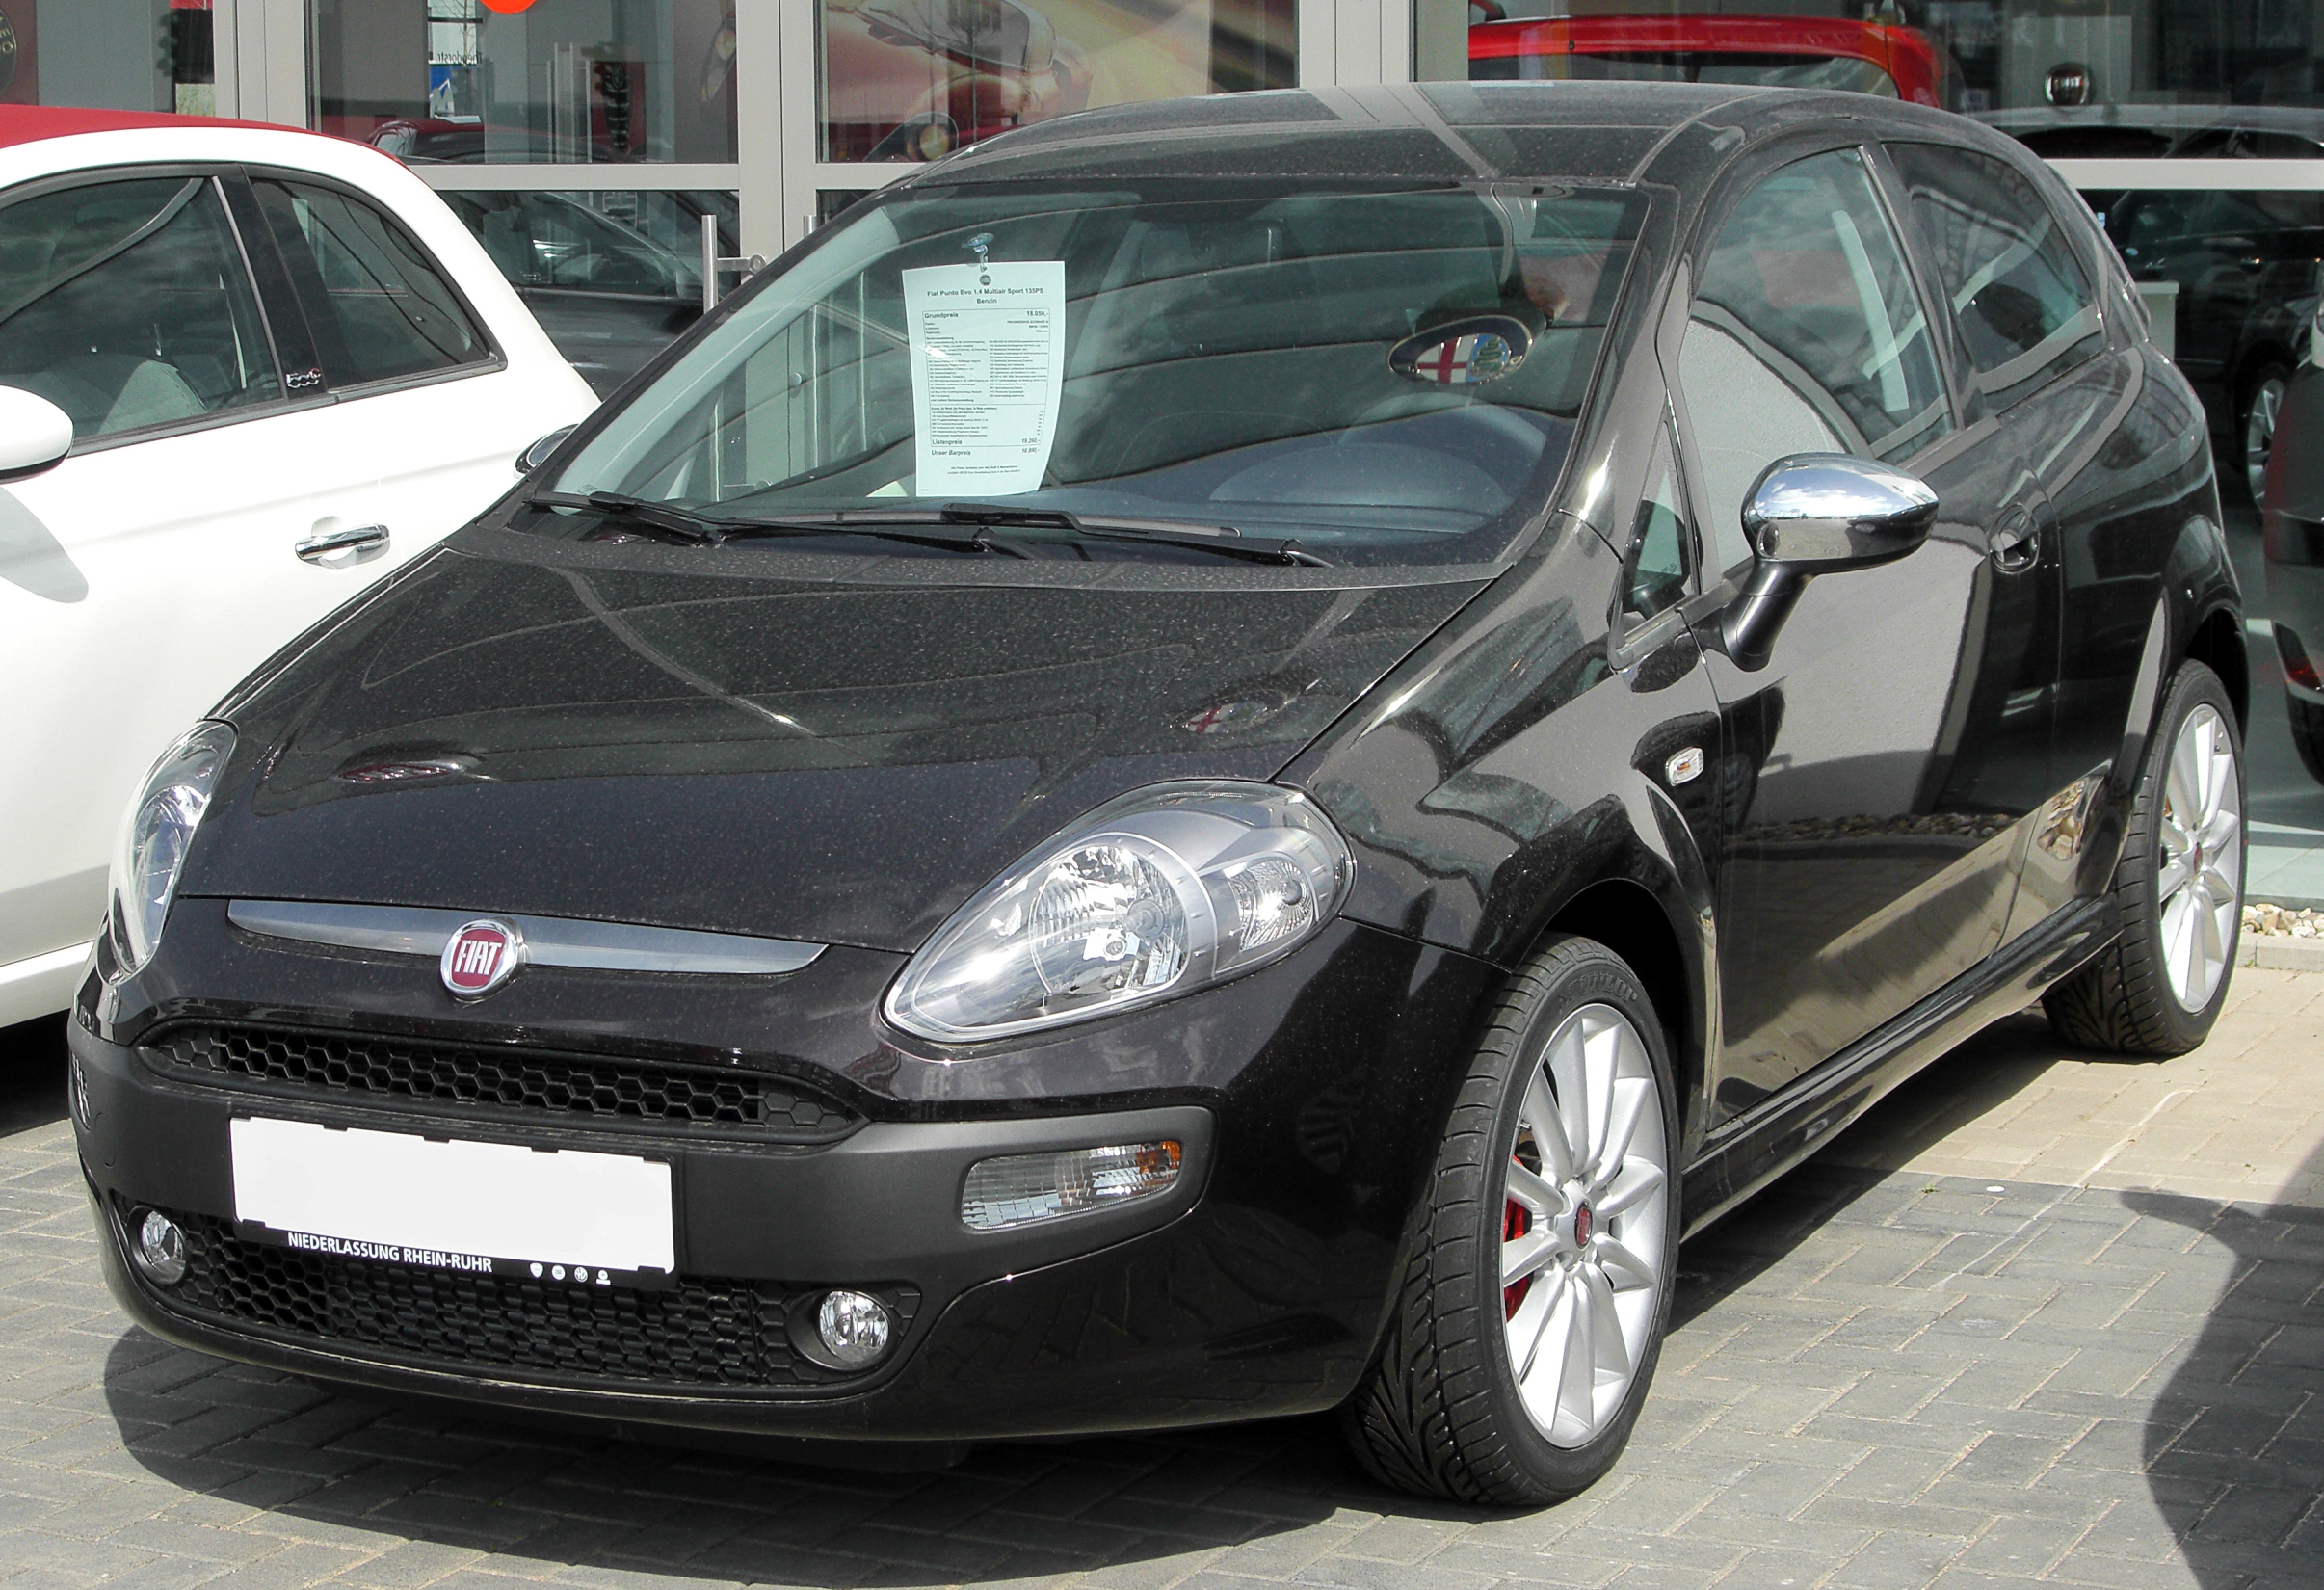 primeiras informa es oficiais do fiat punto 2013 autos segredos. Black Bedroom Furniture Sets. Home Design Ideas